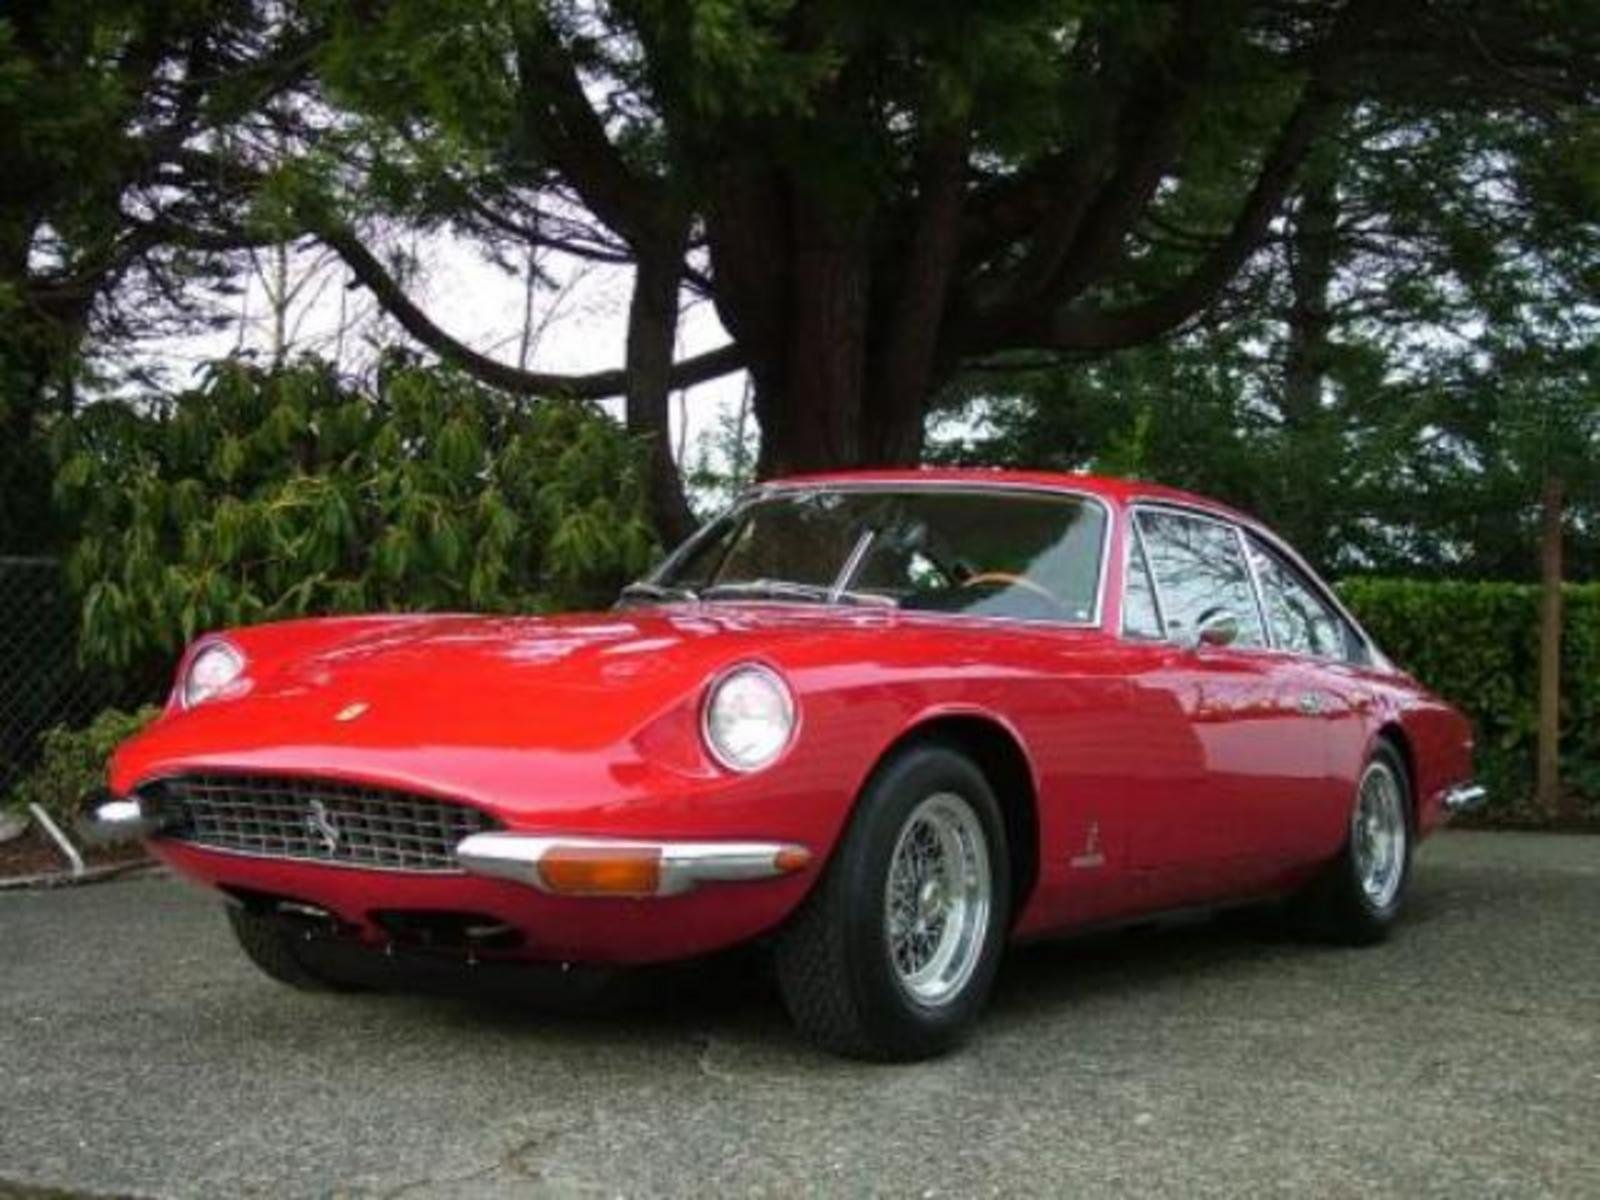 1970 Ferrari 365 Gt 2 2 Russo And Steele News Top Speed